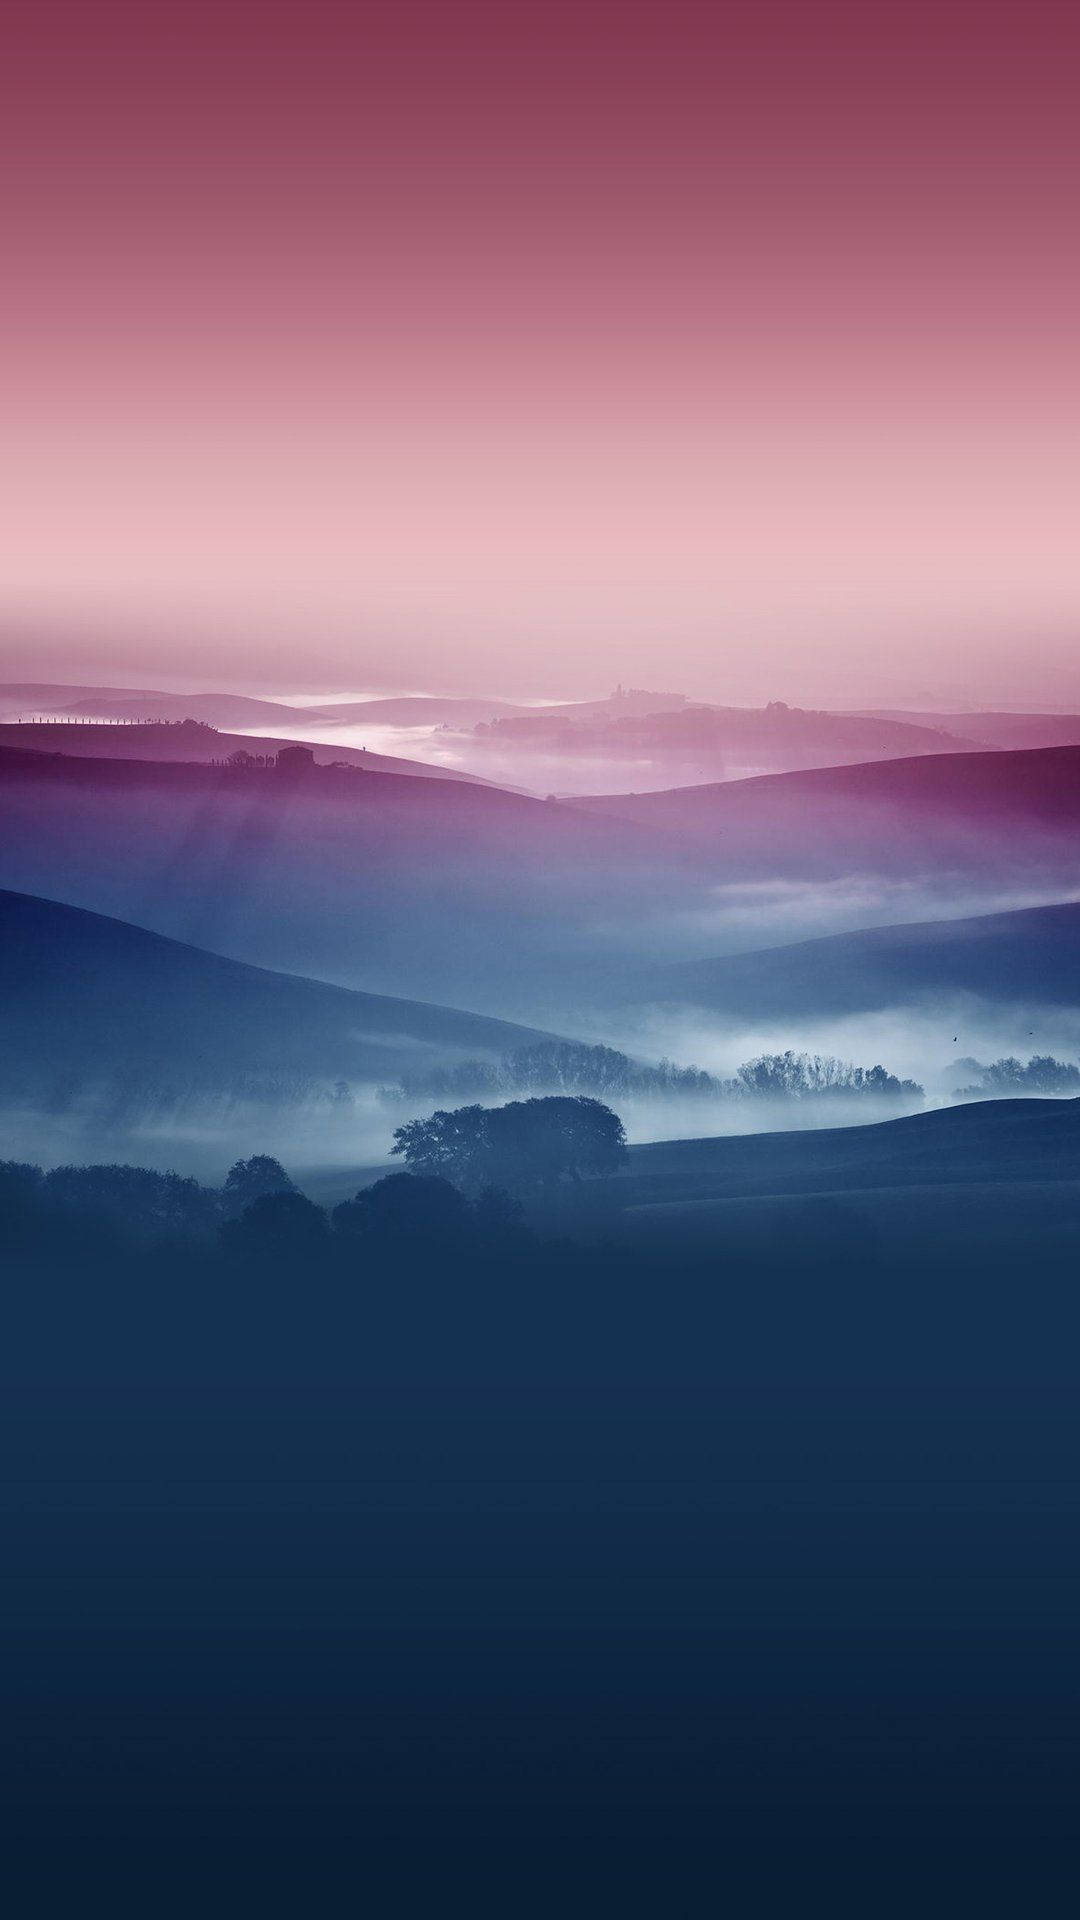 Downloading Wallpaper for Mobile Phone wallpapers